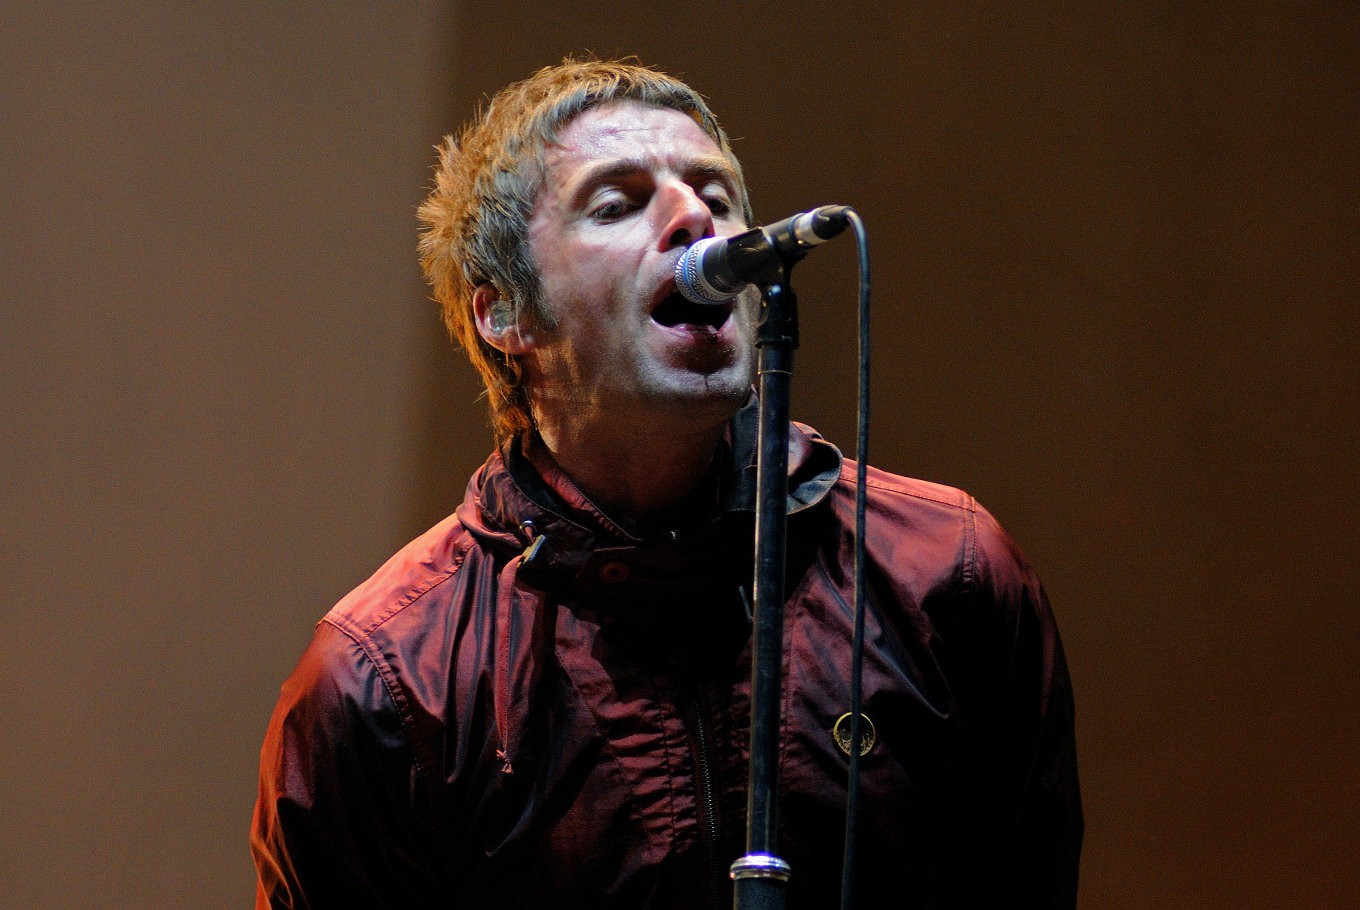 Liam Gallagher documentary to premiere at Cannes film festival